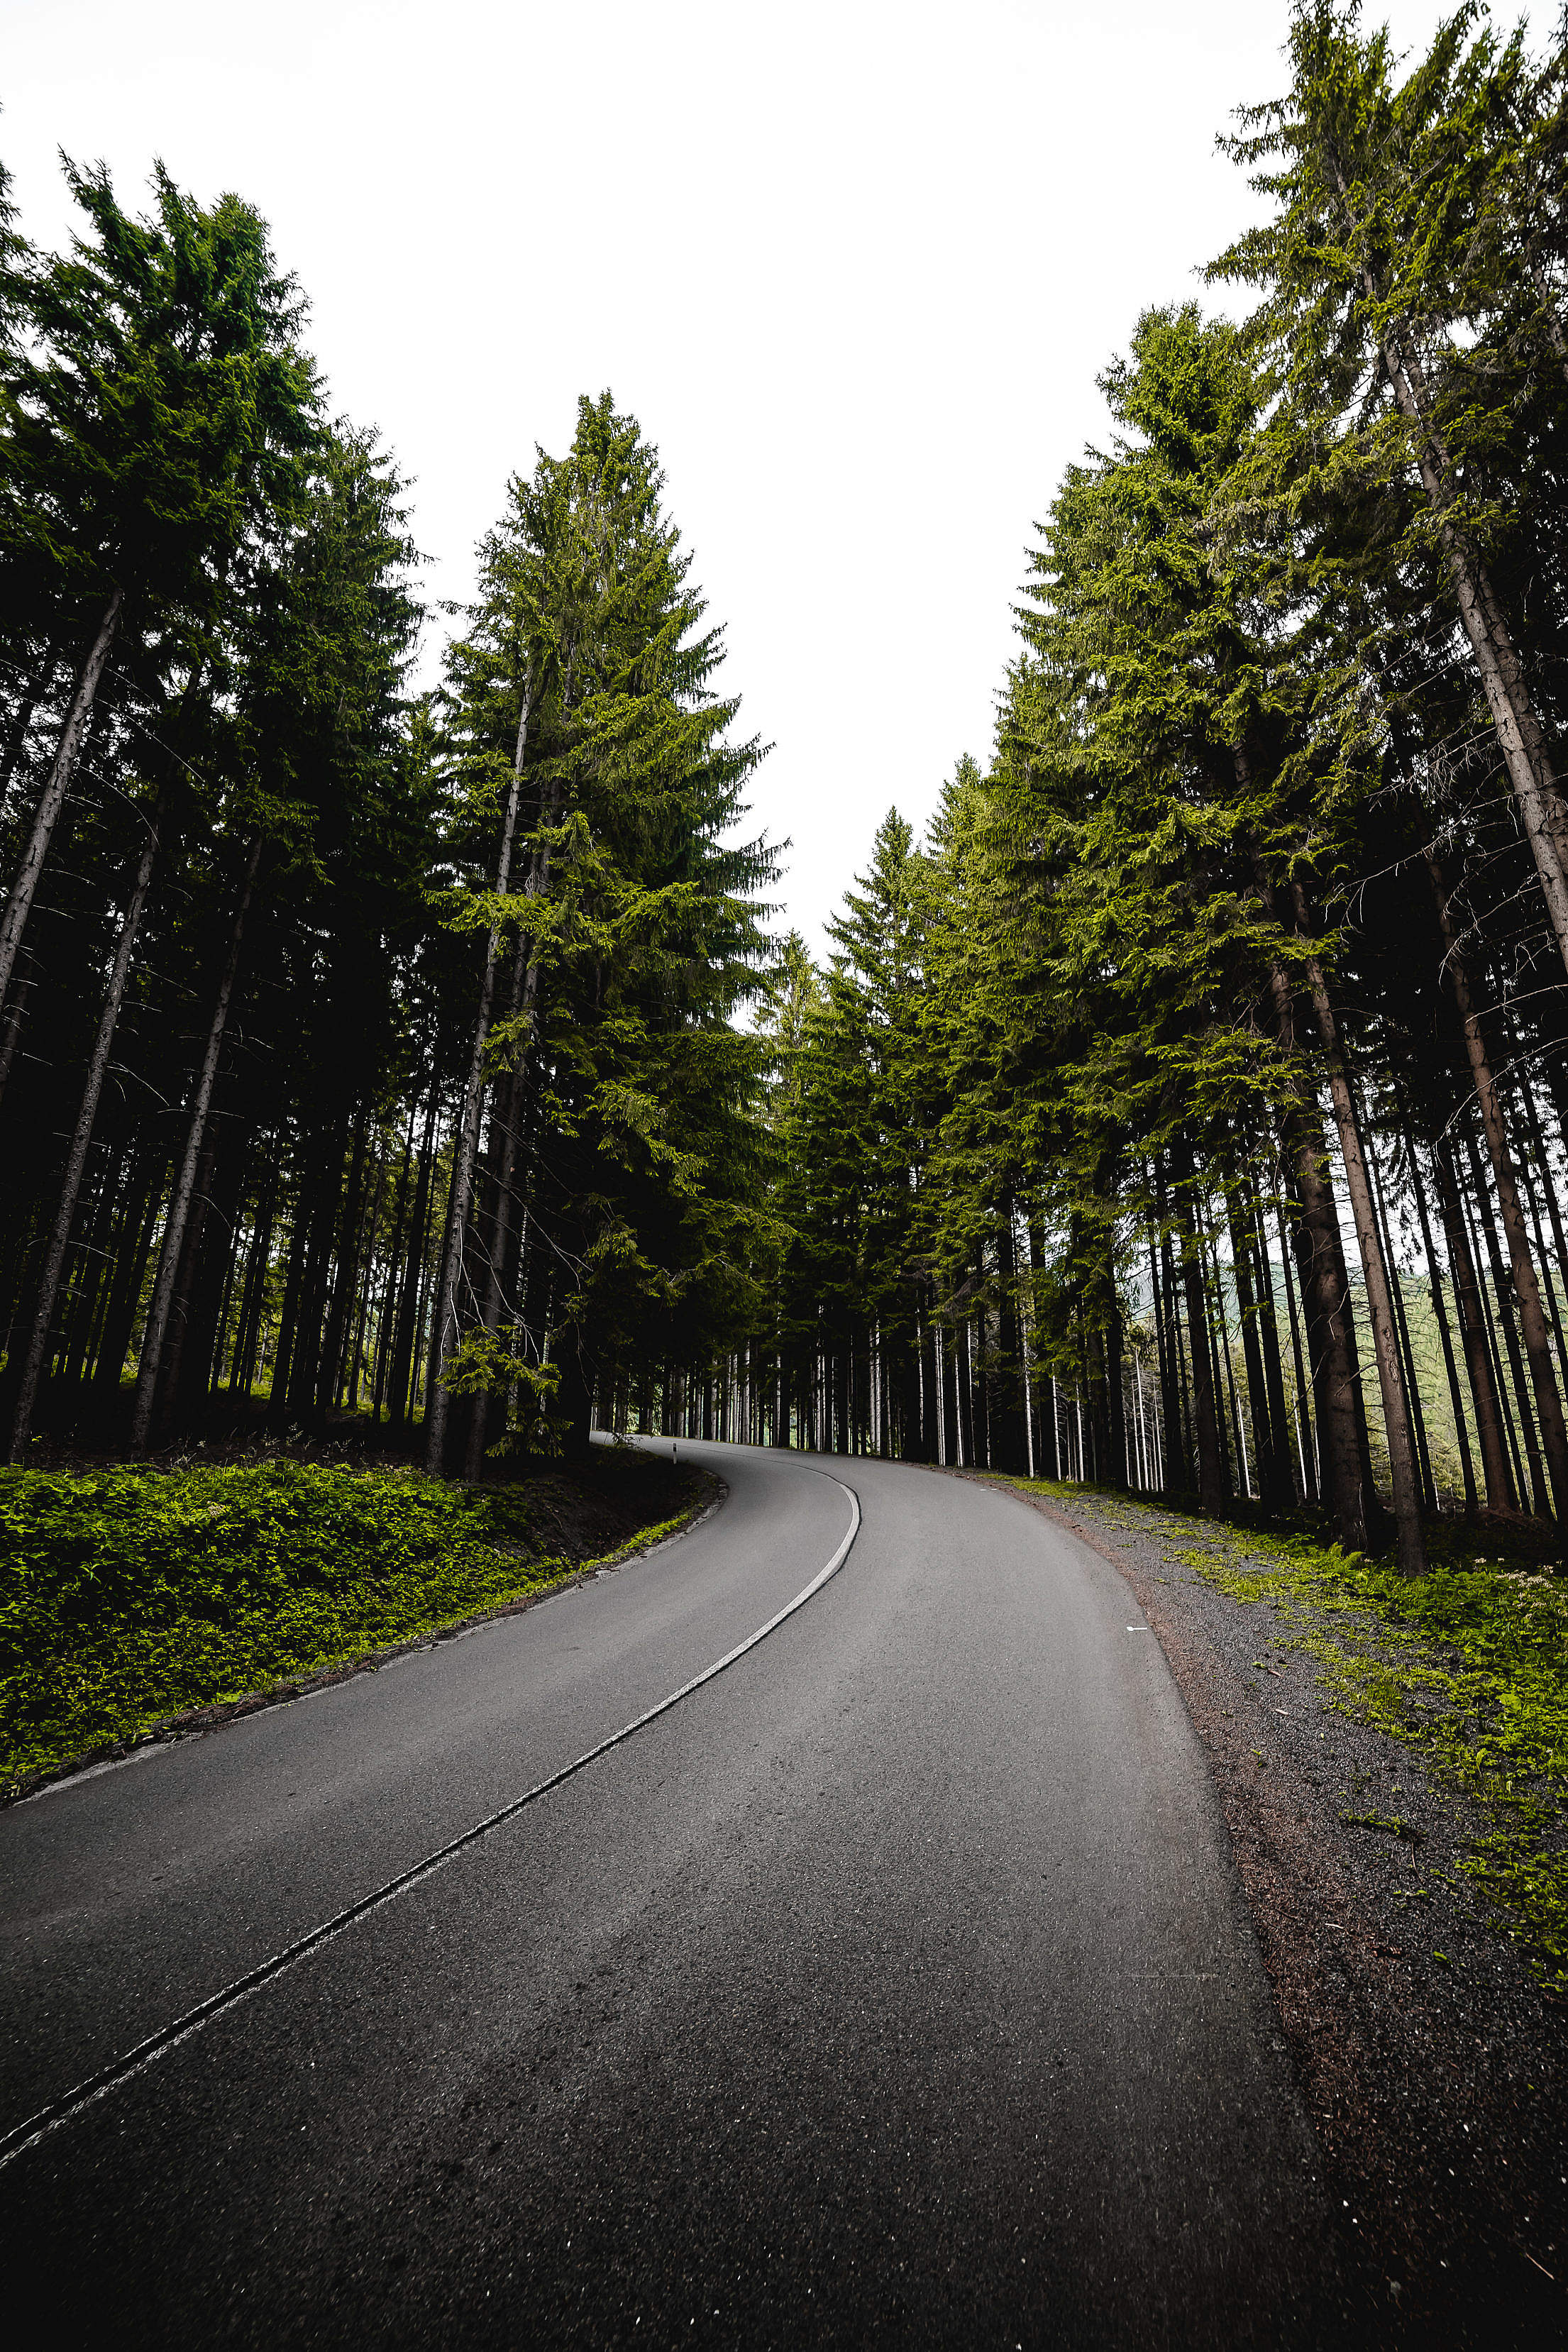 Long Road in Forest Vertical Free Stock Photo